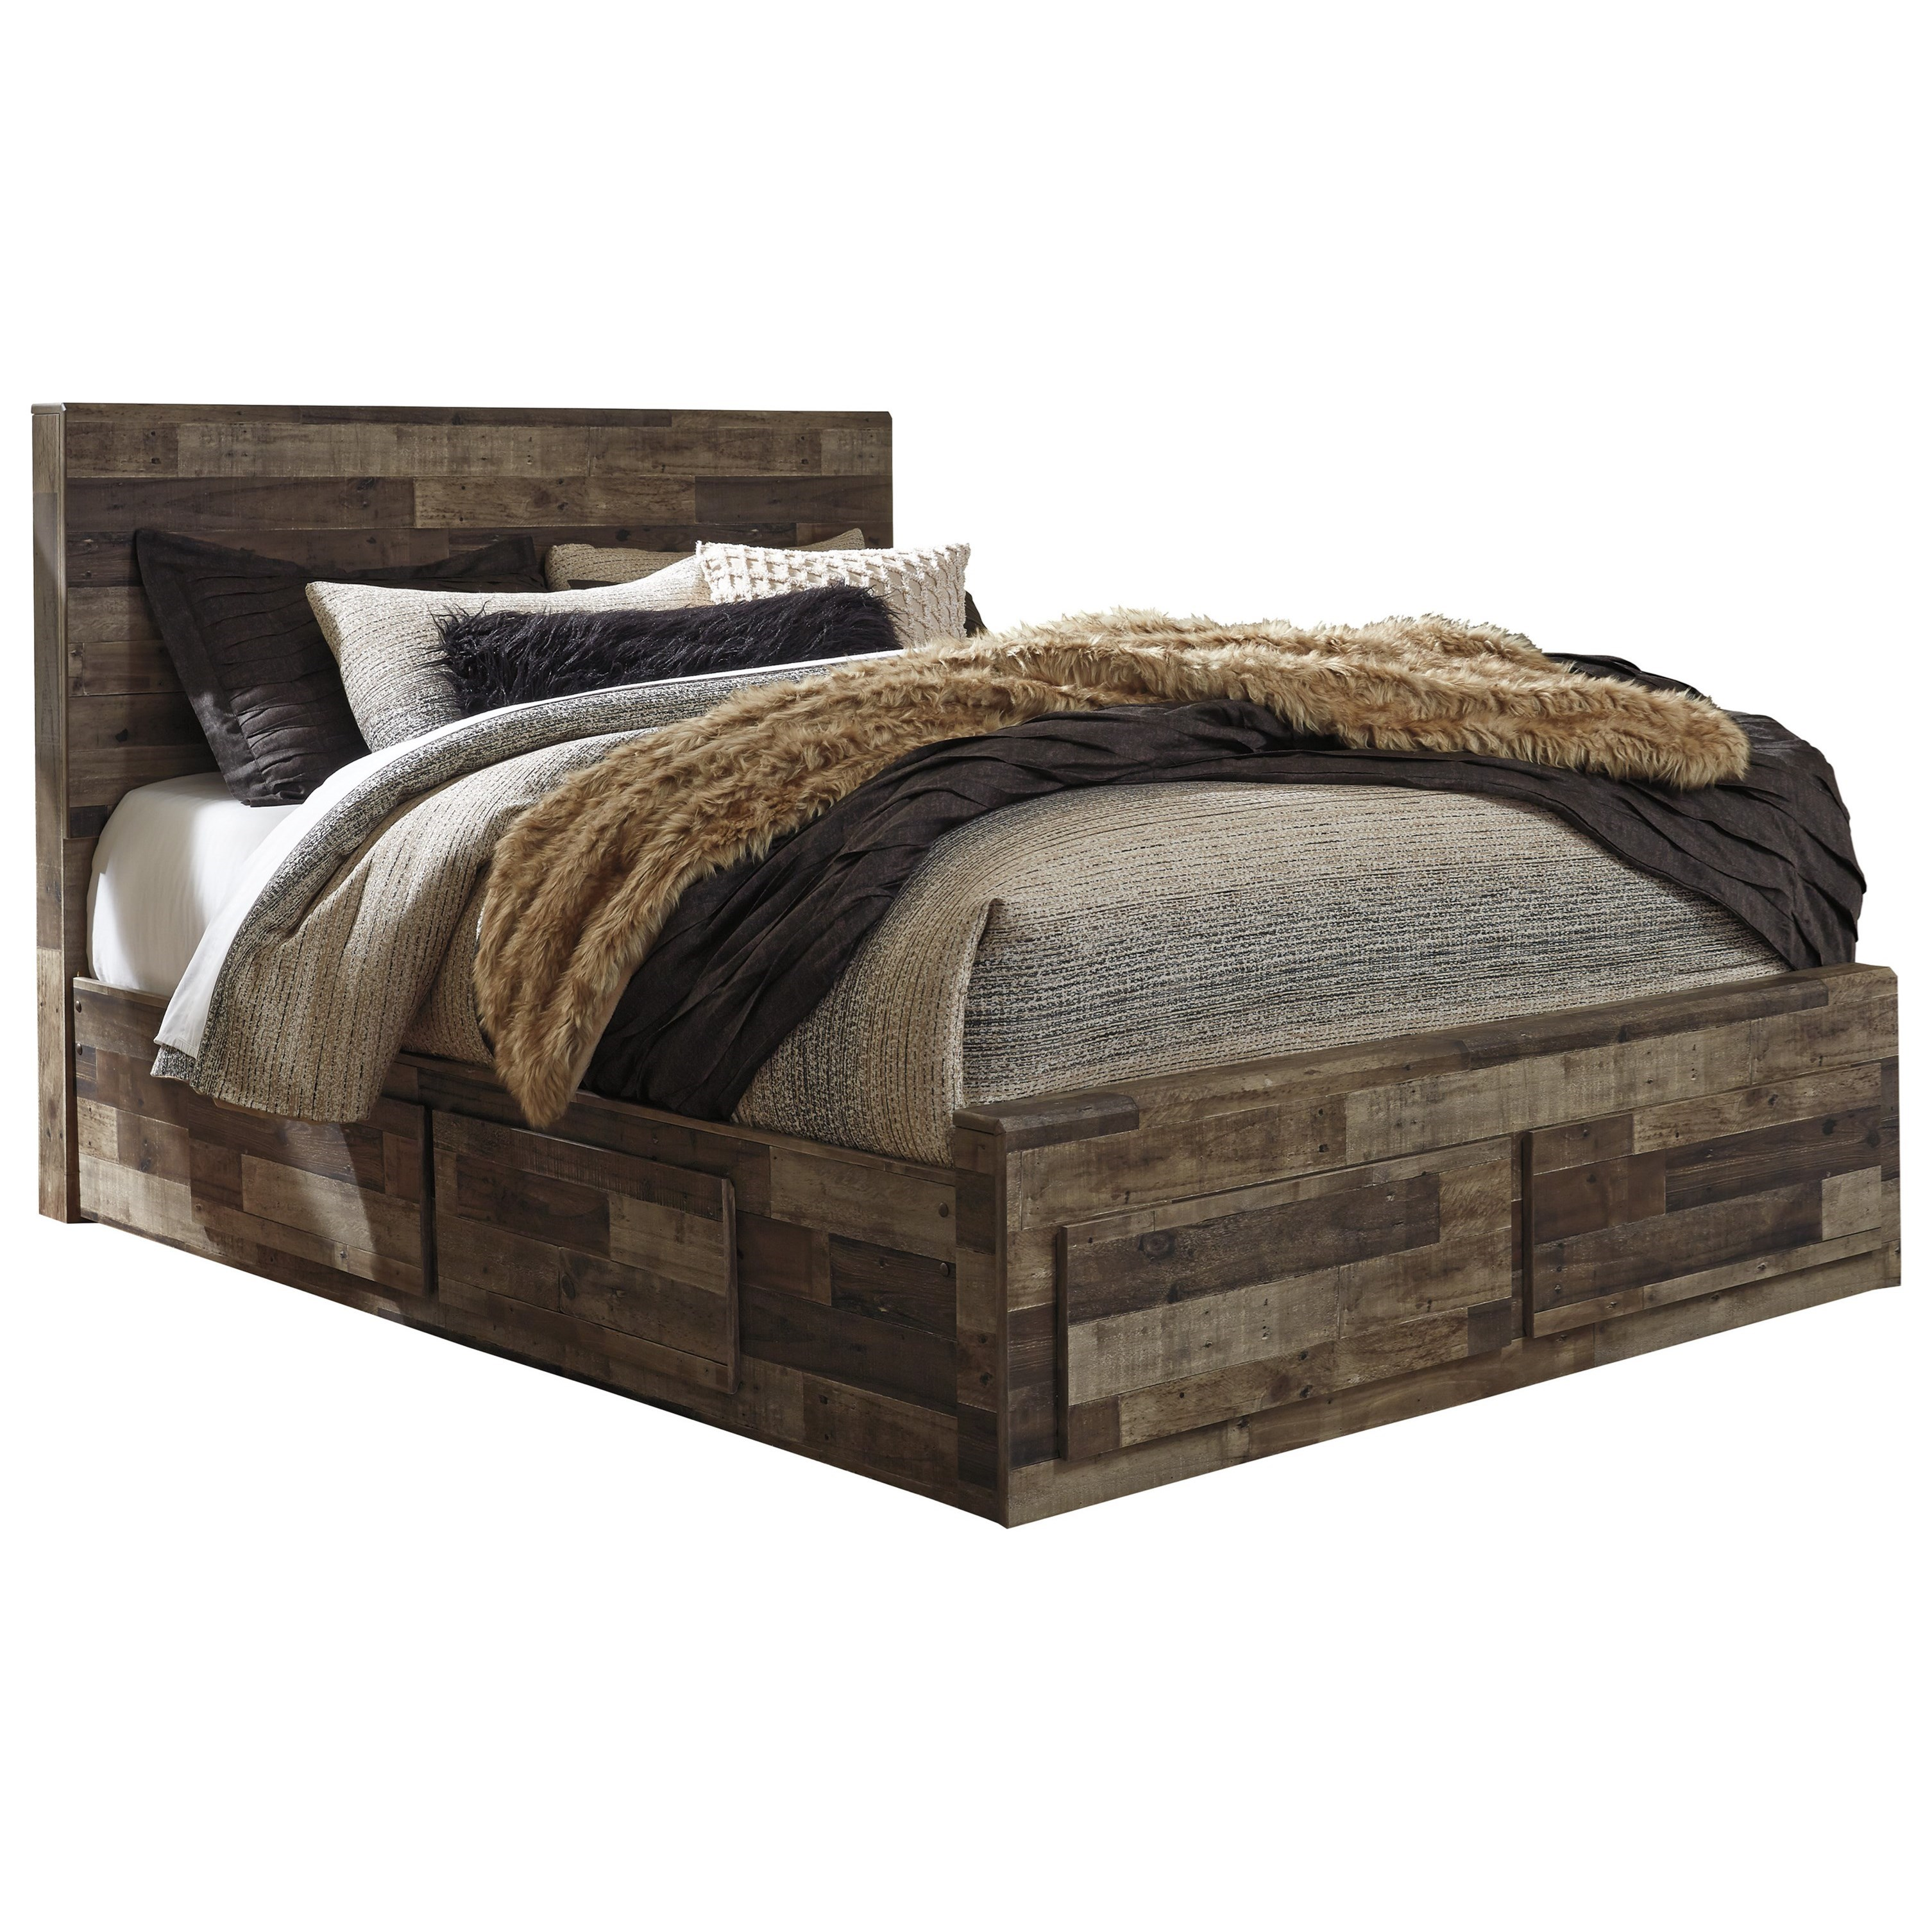 Picture of: Ashley Furniture Benchcraft Derekson Rustic Modern Queen Storage Bed With 6 Drawers Del Sol Furniture Platform Beds Low Profile Beds